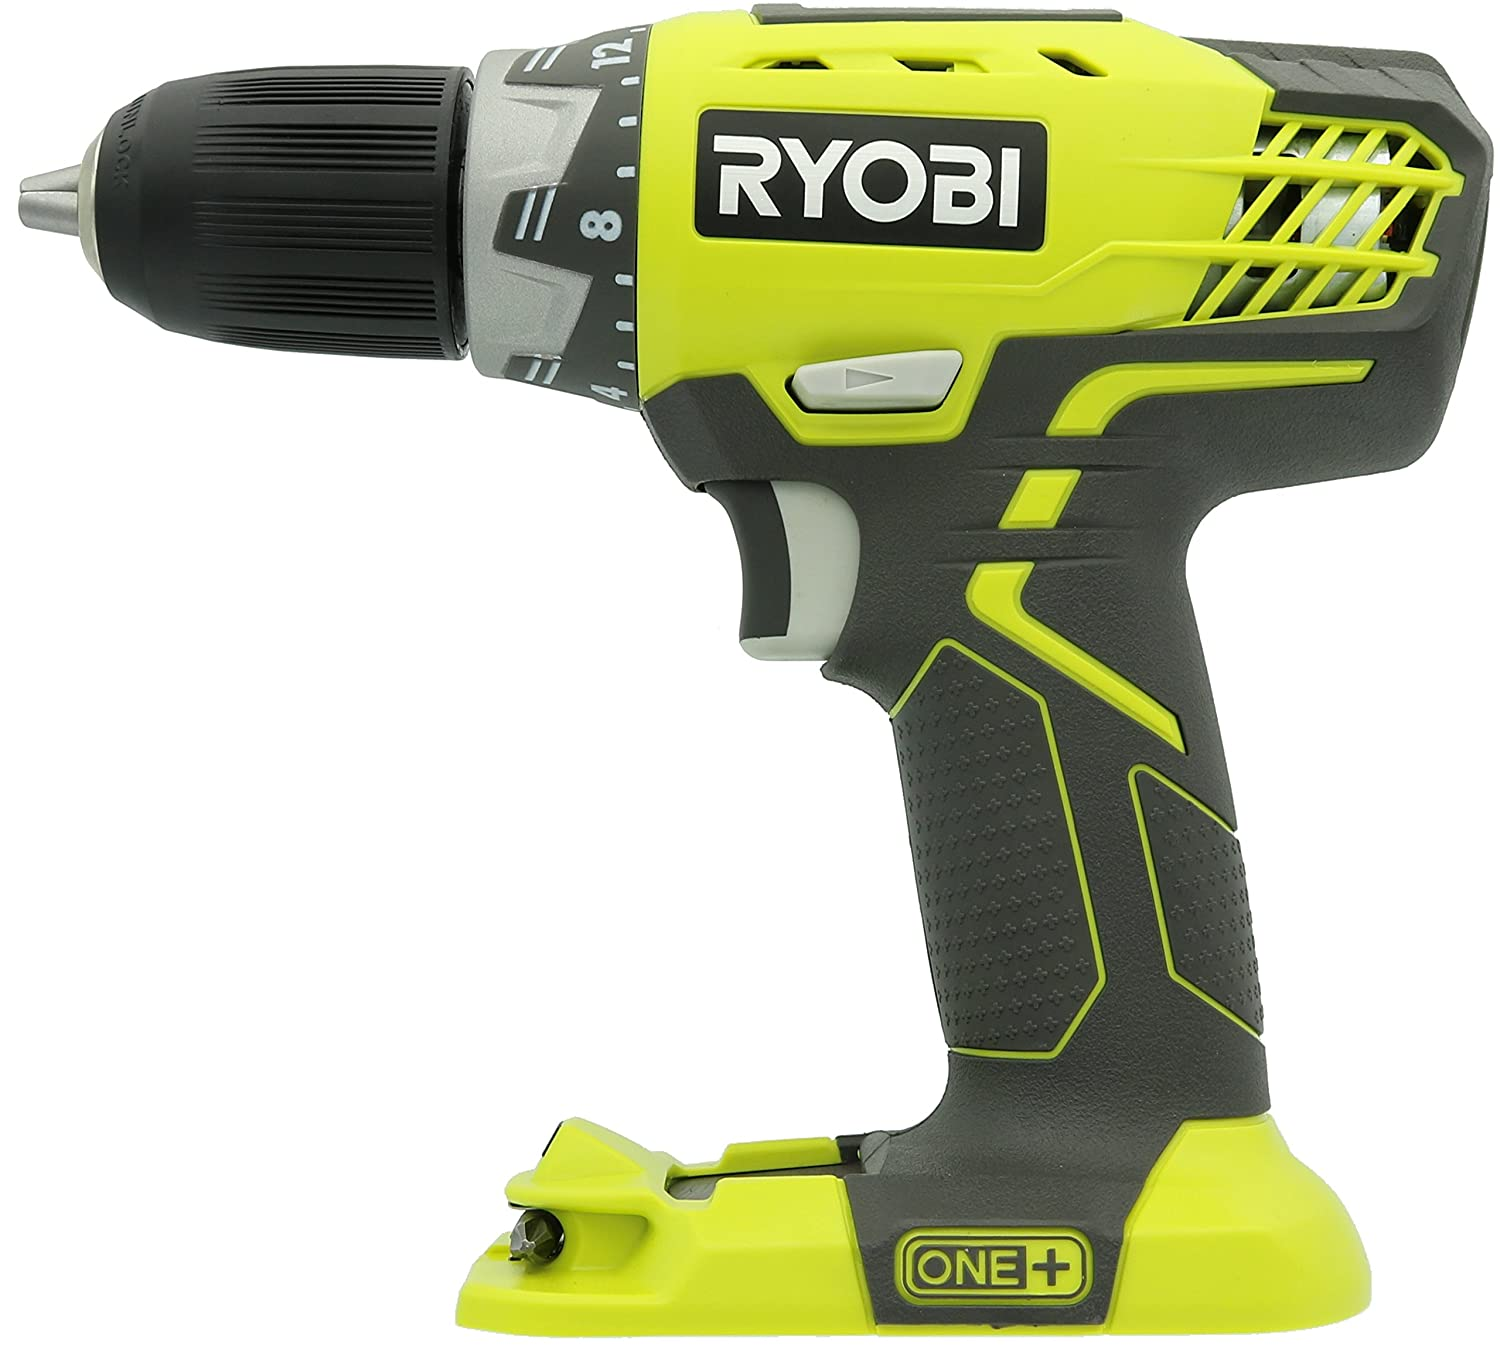 second power pick - best power combo - ryobi p208 one+ 18v li-ion cordless drill/driver